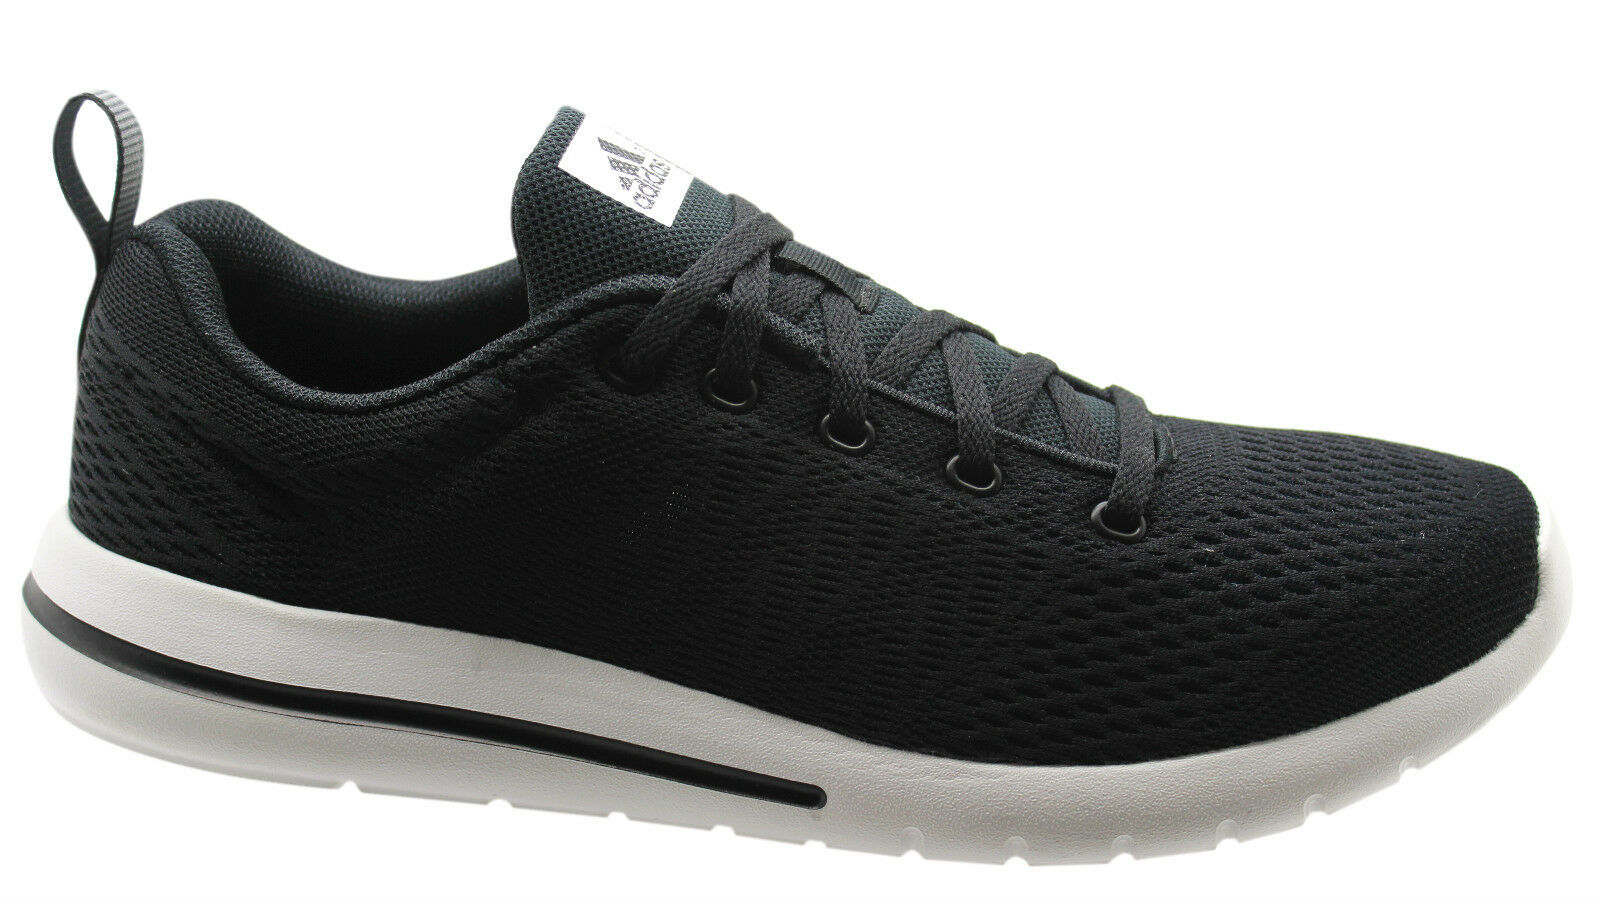 Adidas Adidas Adidas Element Urban Run Mens Running Fitness Trainers Shoes Black B44397 U87 e2ae04